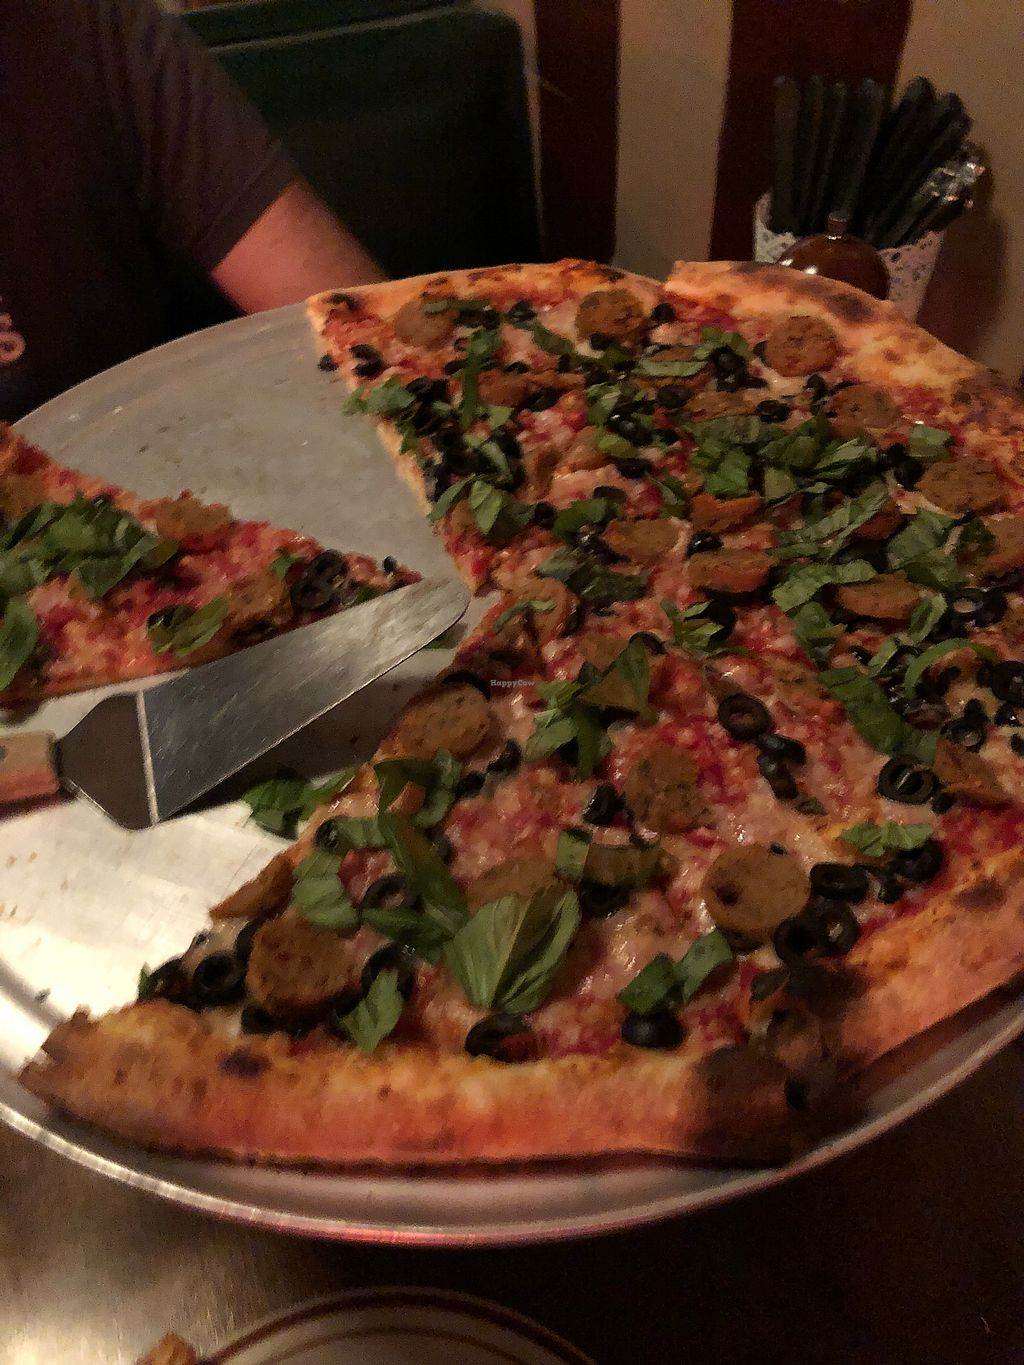 "Photo of Gladstone Pizza   by <a href=""/members/profile/MollyElwood"">MollyElwood</a> <br/>Field Roast awesomeness  <br/> April 7, 2018  - <a href='/contact/abuse/image/64152/381763'>Report</a>"